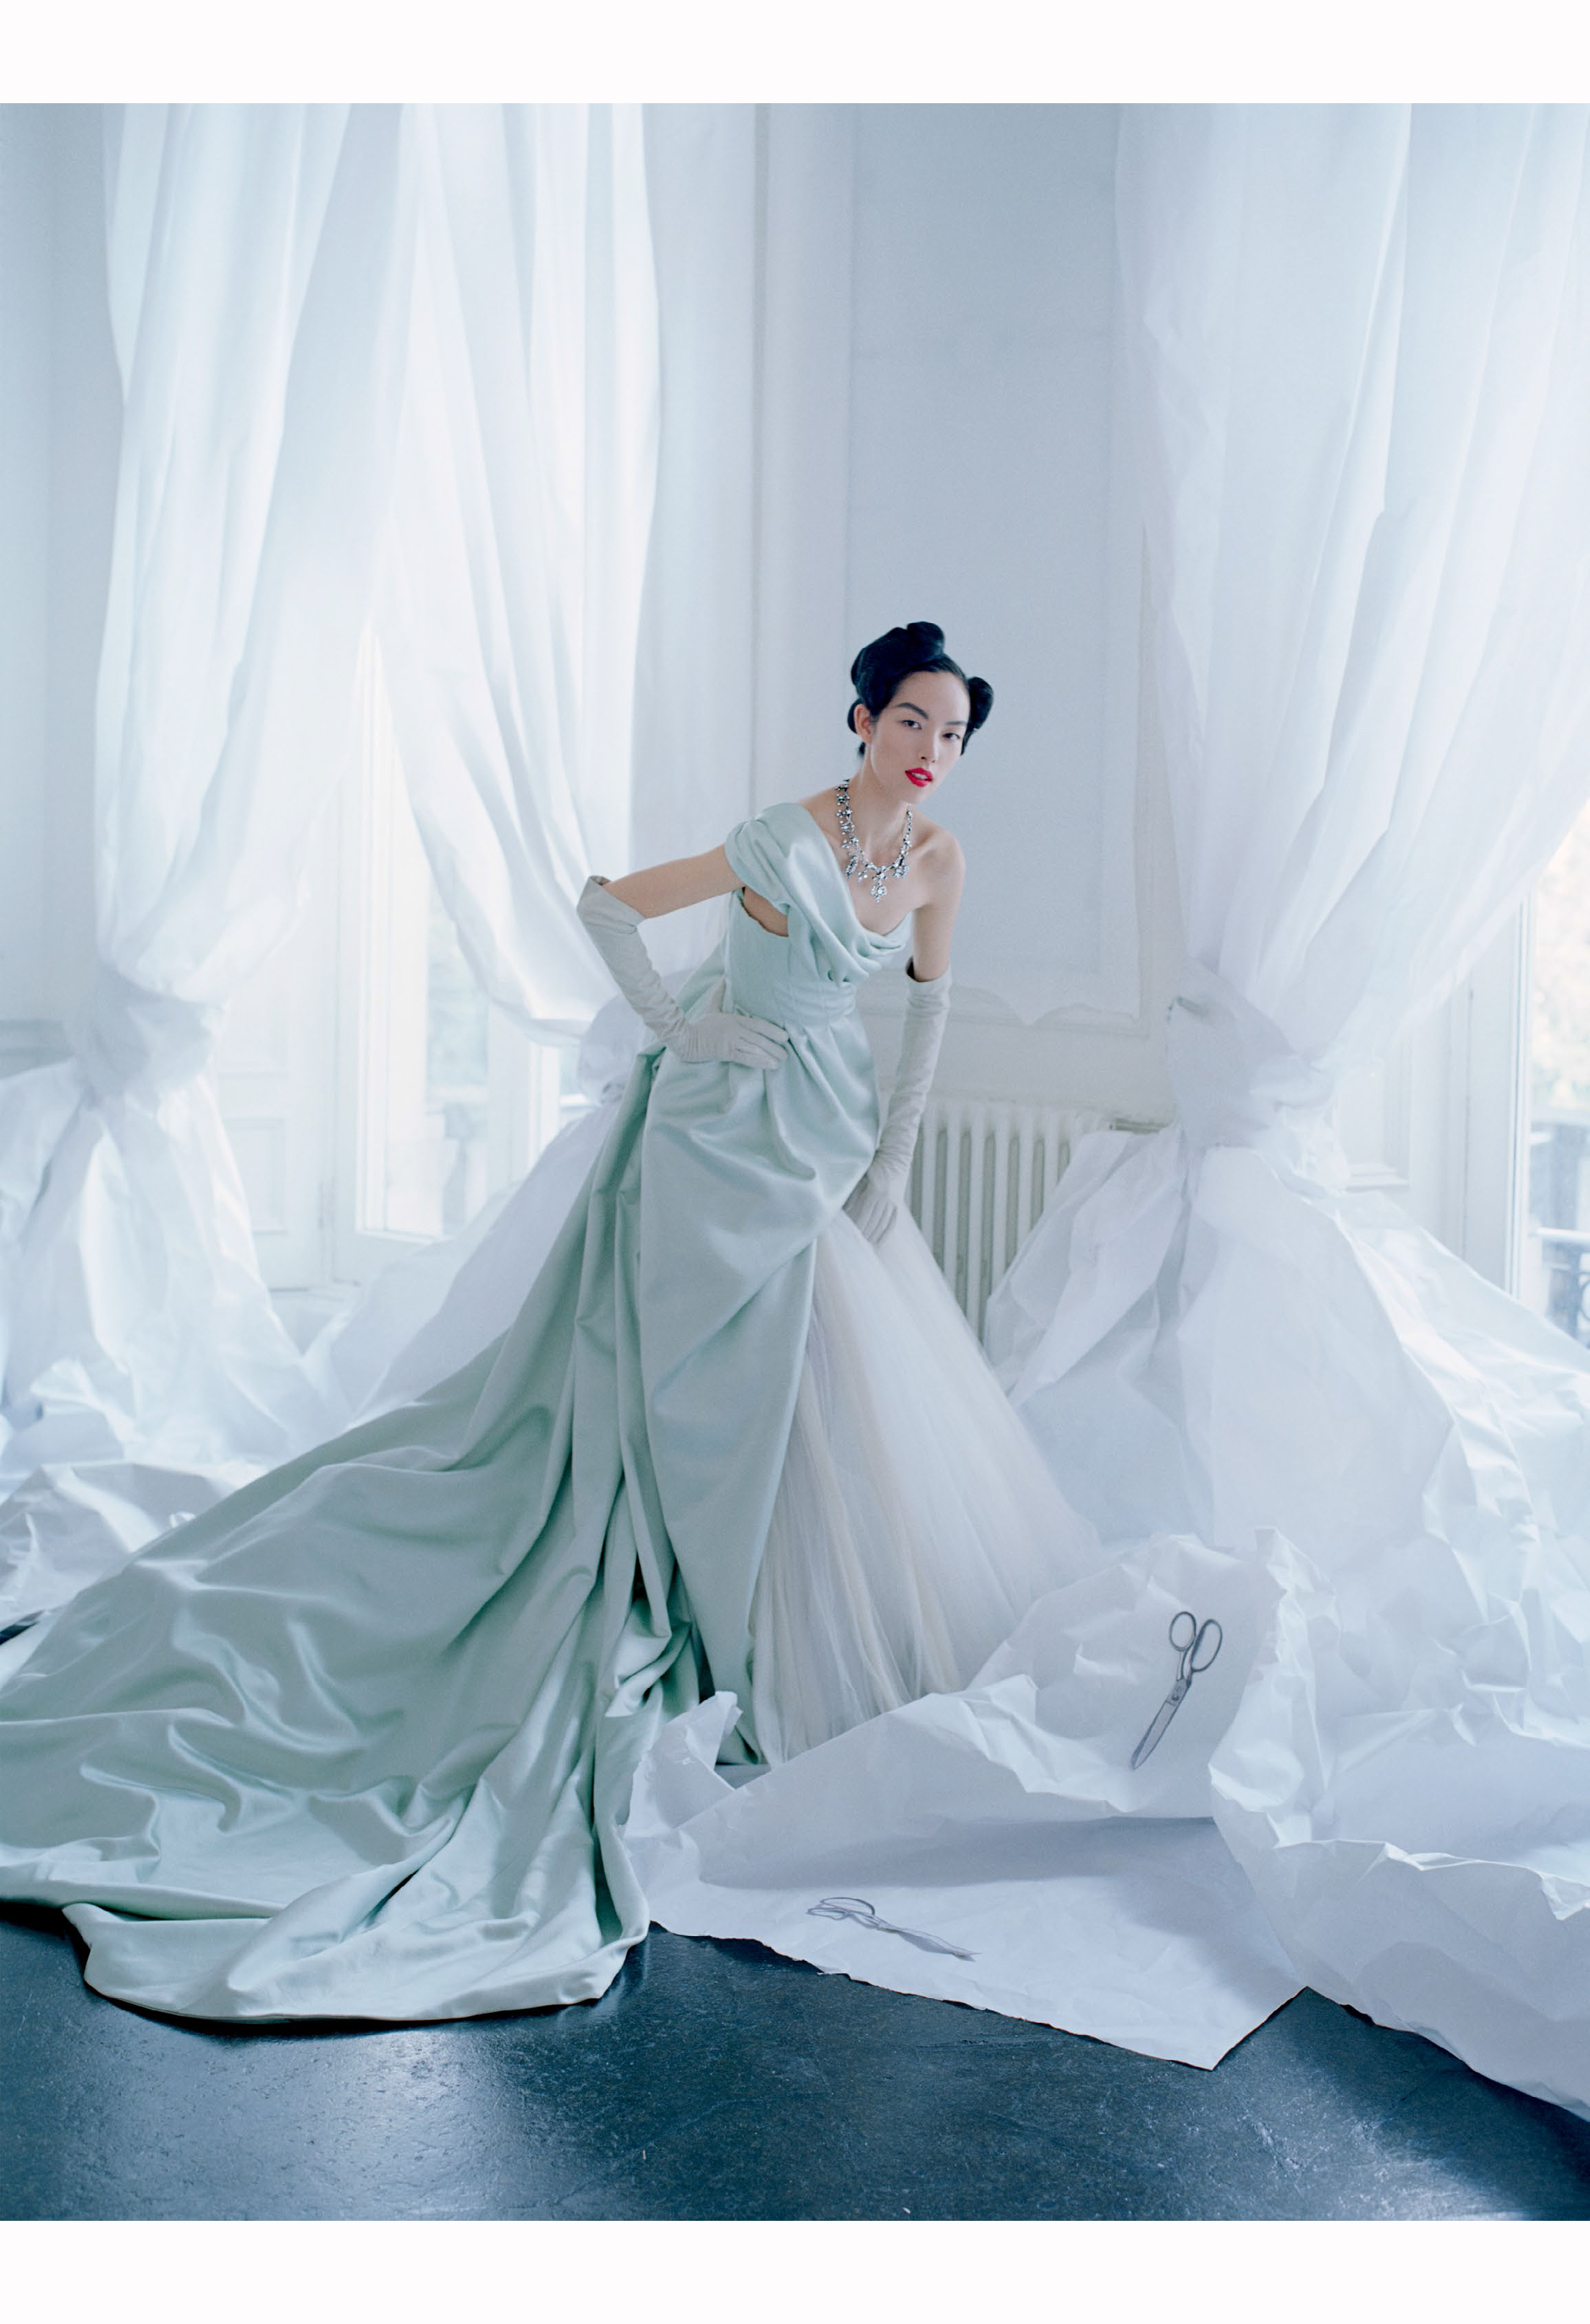 Charles James | © Pleasurephoto